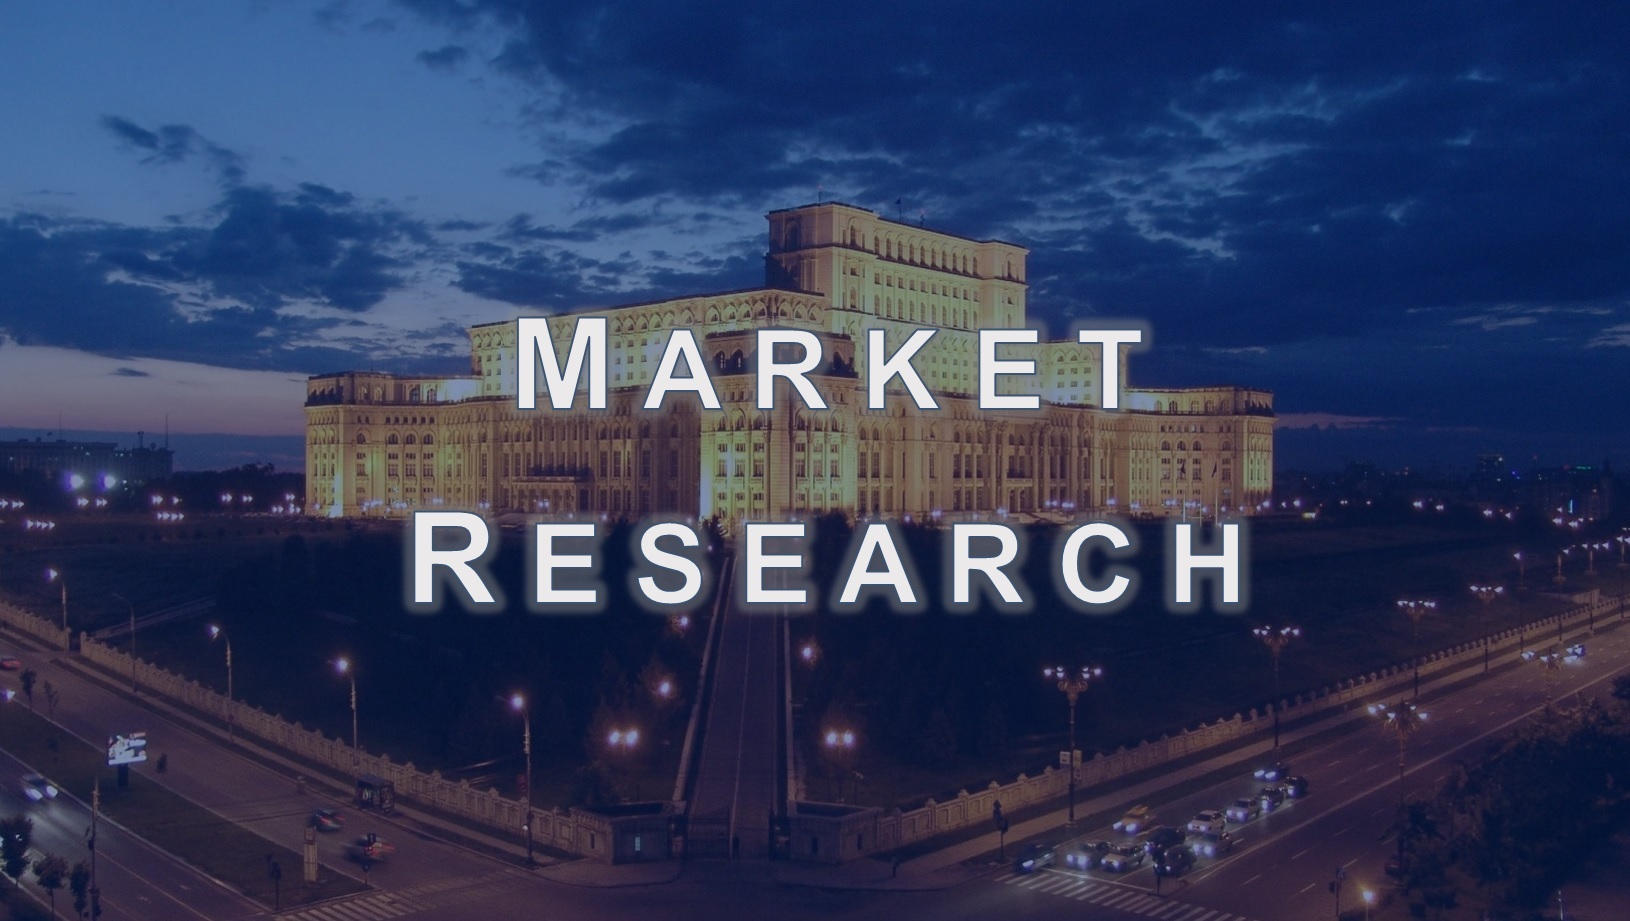 1.1 Market Research